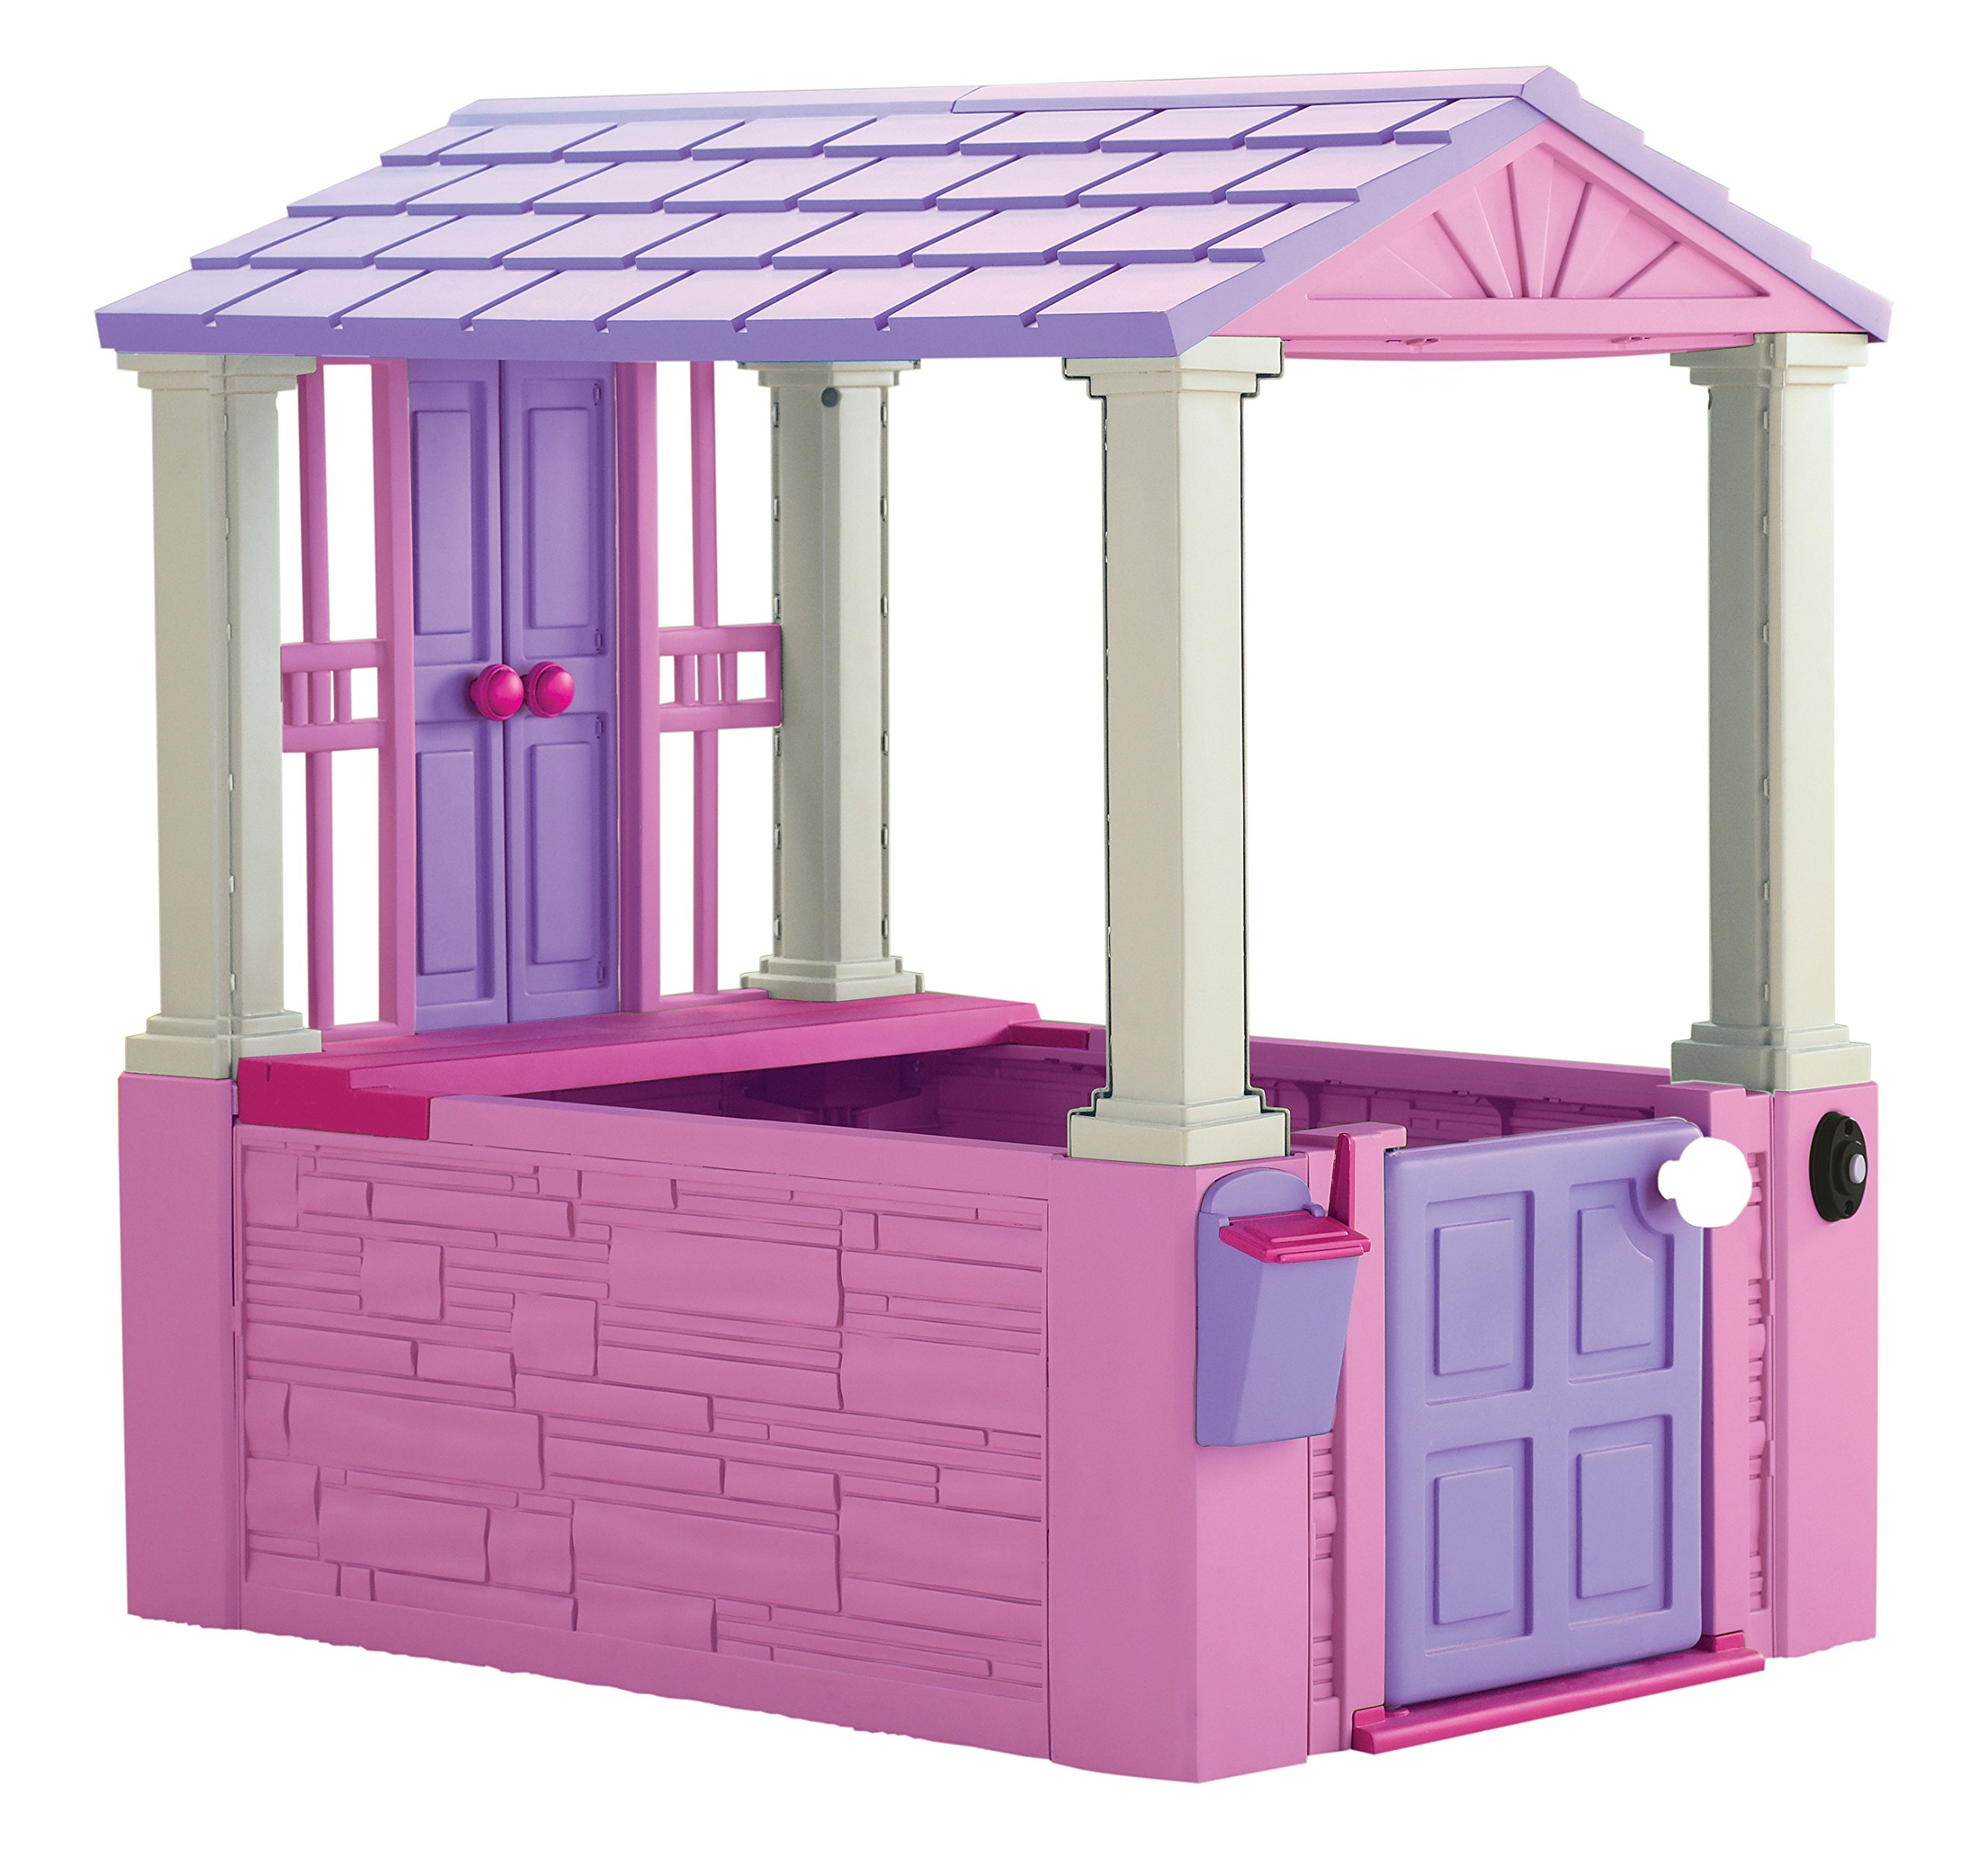 American Plastic Toys My Very Own Dream Cottage Interactive Playhouse for Kids, Pink by American Plastic Toys (Image #1)